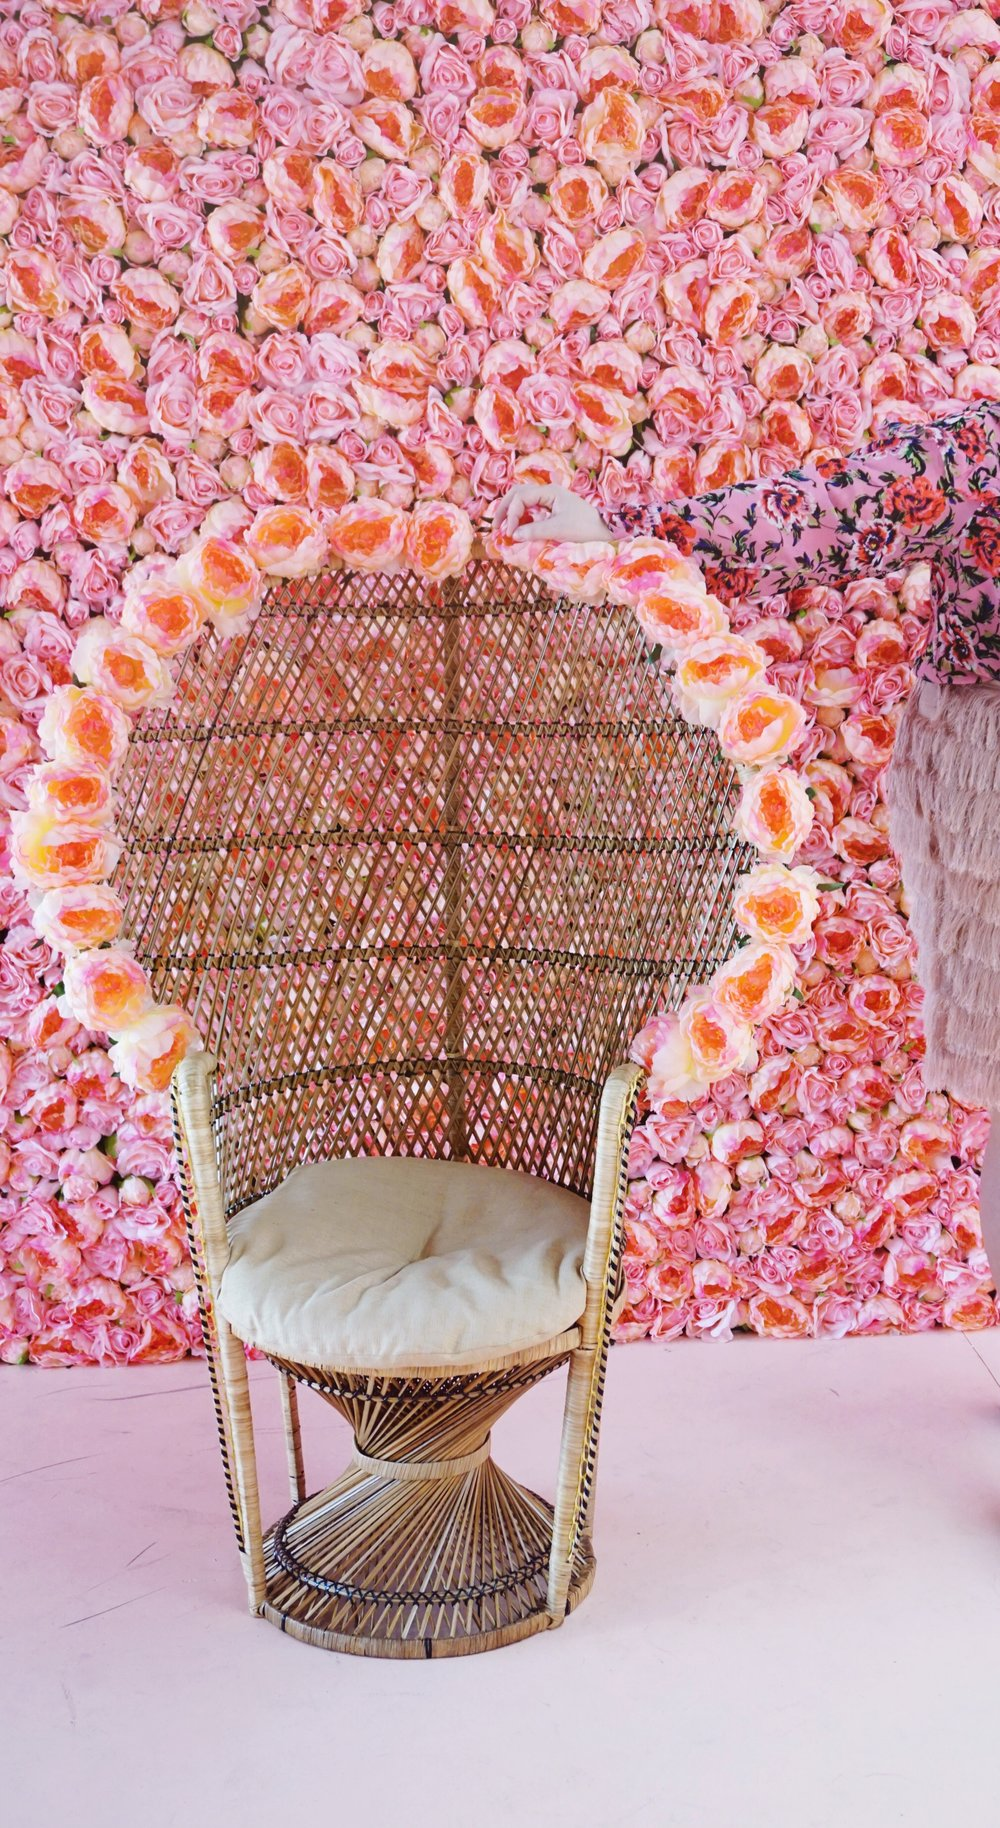 chair flower vault.jpg